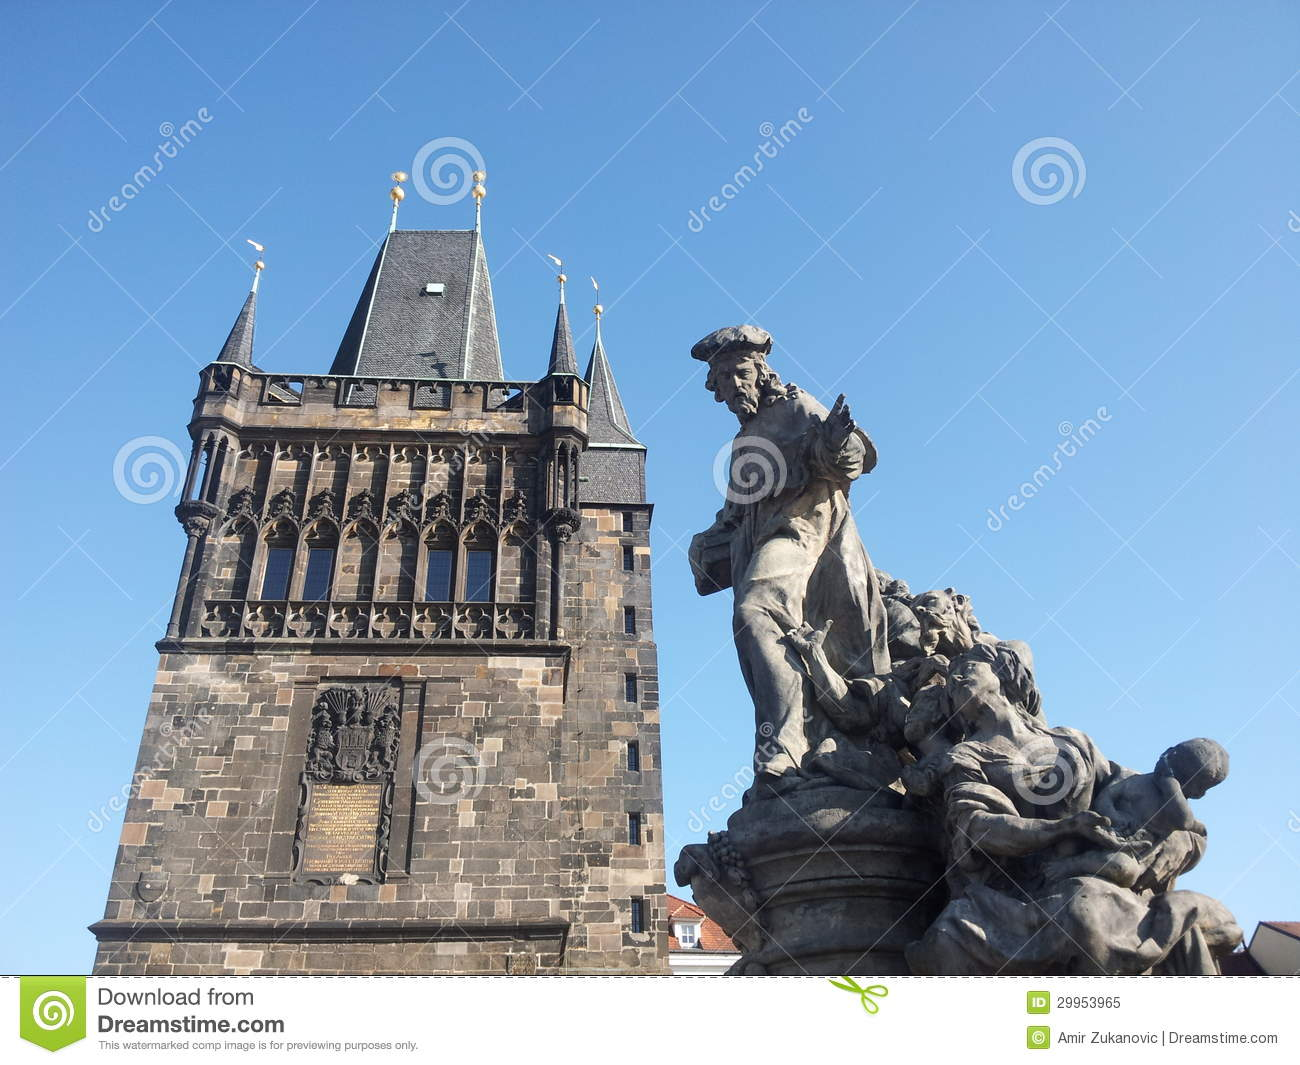 Statue on Charles bridge with tower in background